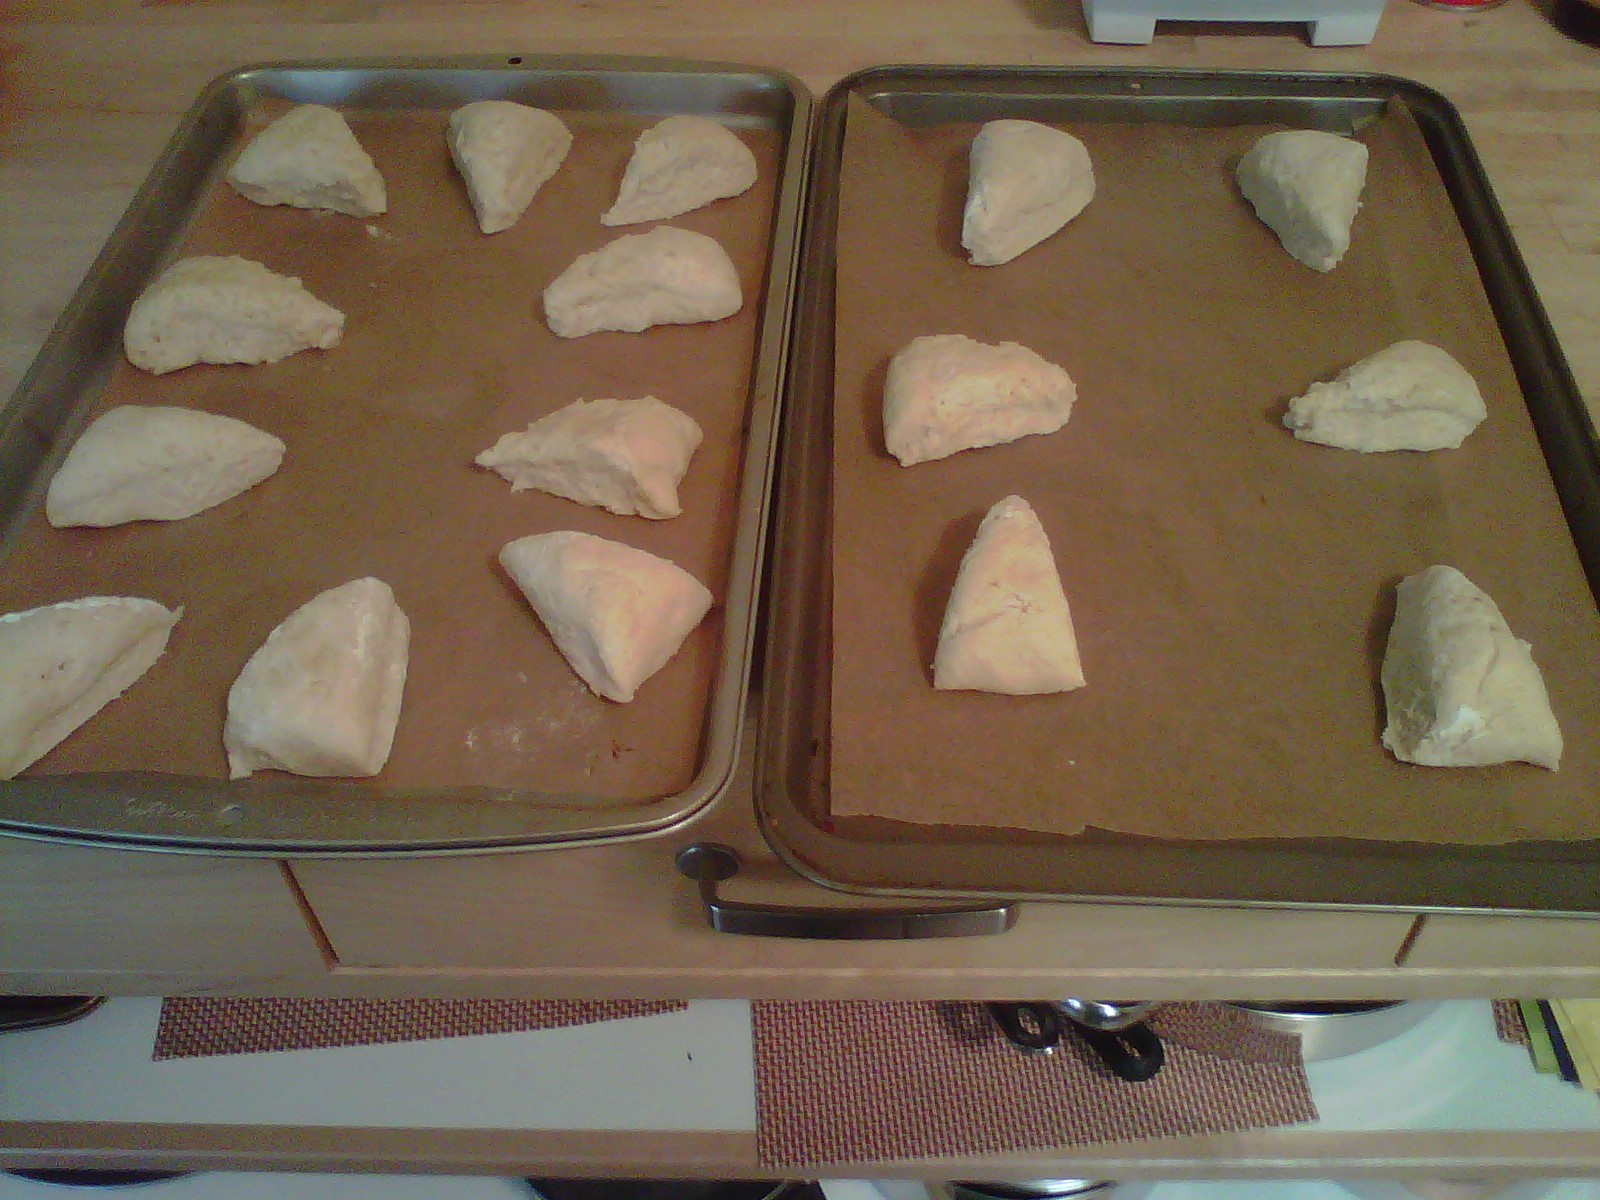 Wedges ready for baking